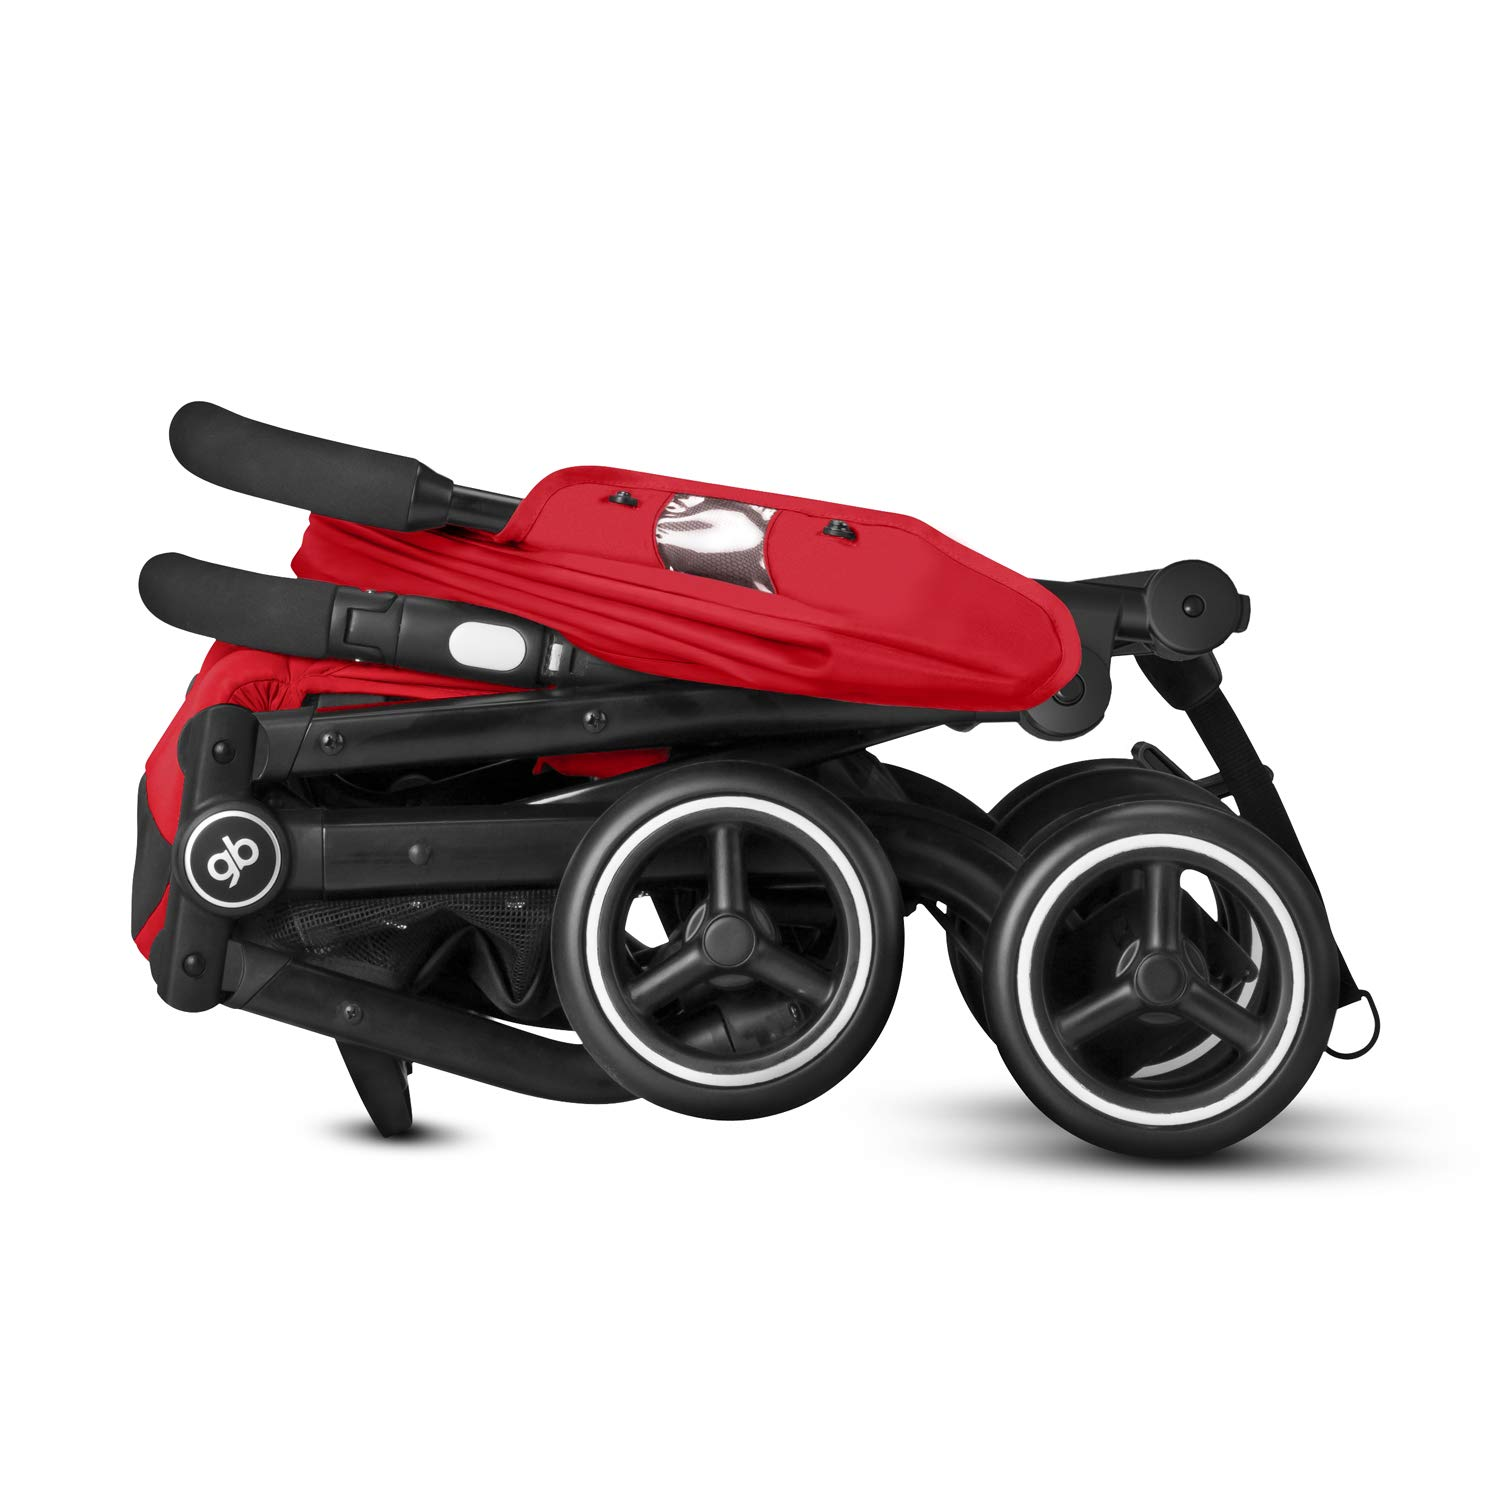 gb 2019 Buggy QBIT+ All-Terrain with Bumper Bar''Night Blue''- from Birth up to 17 kg (Approx. 4 Years) - GoodBaby QBIT Plus by gb (Image #7)